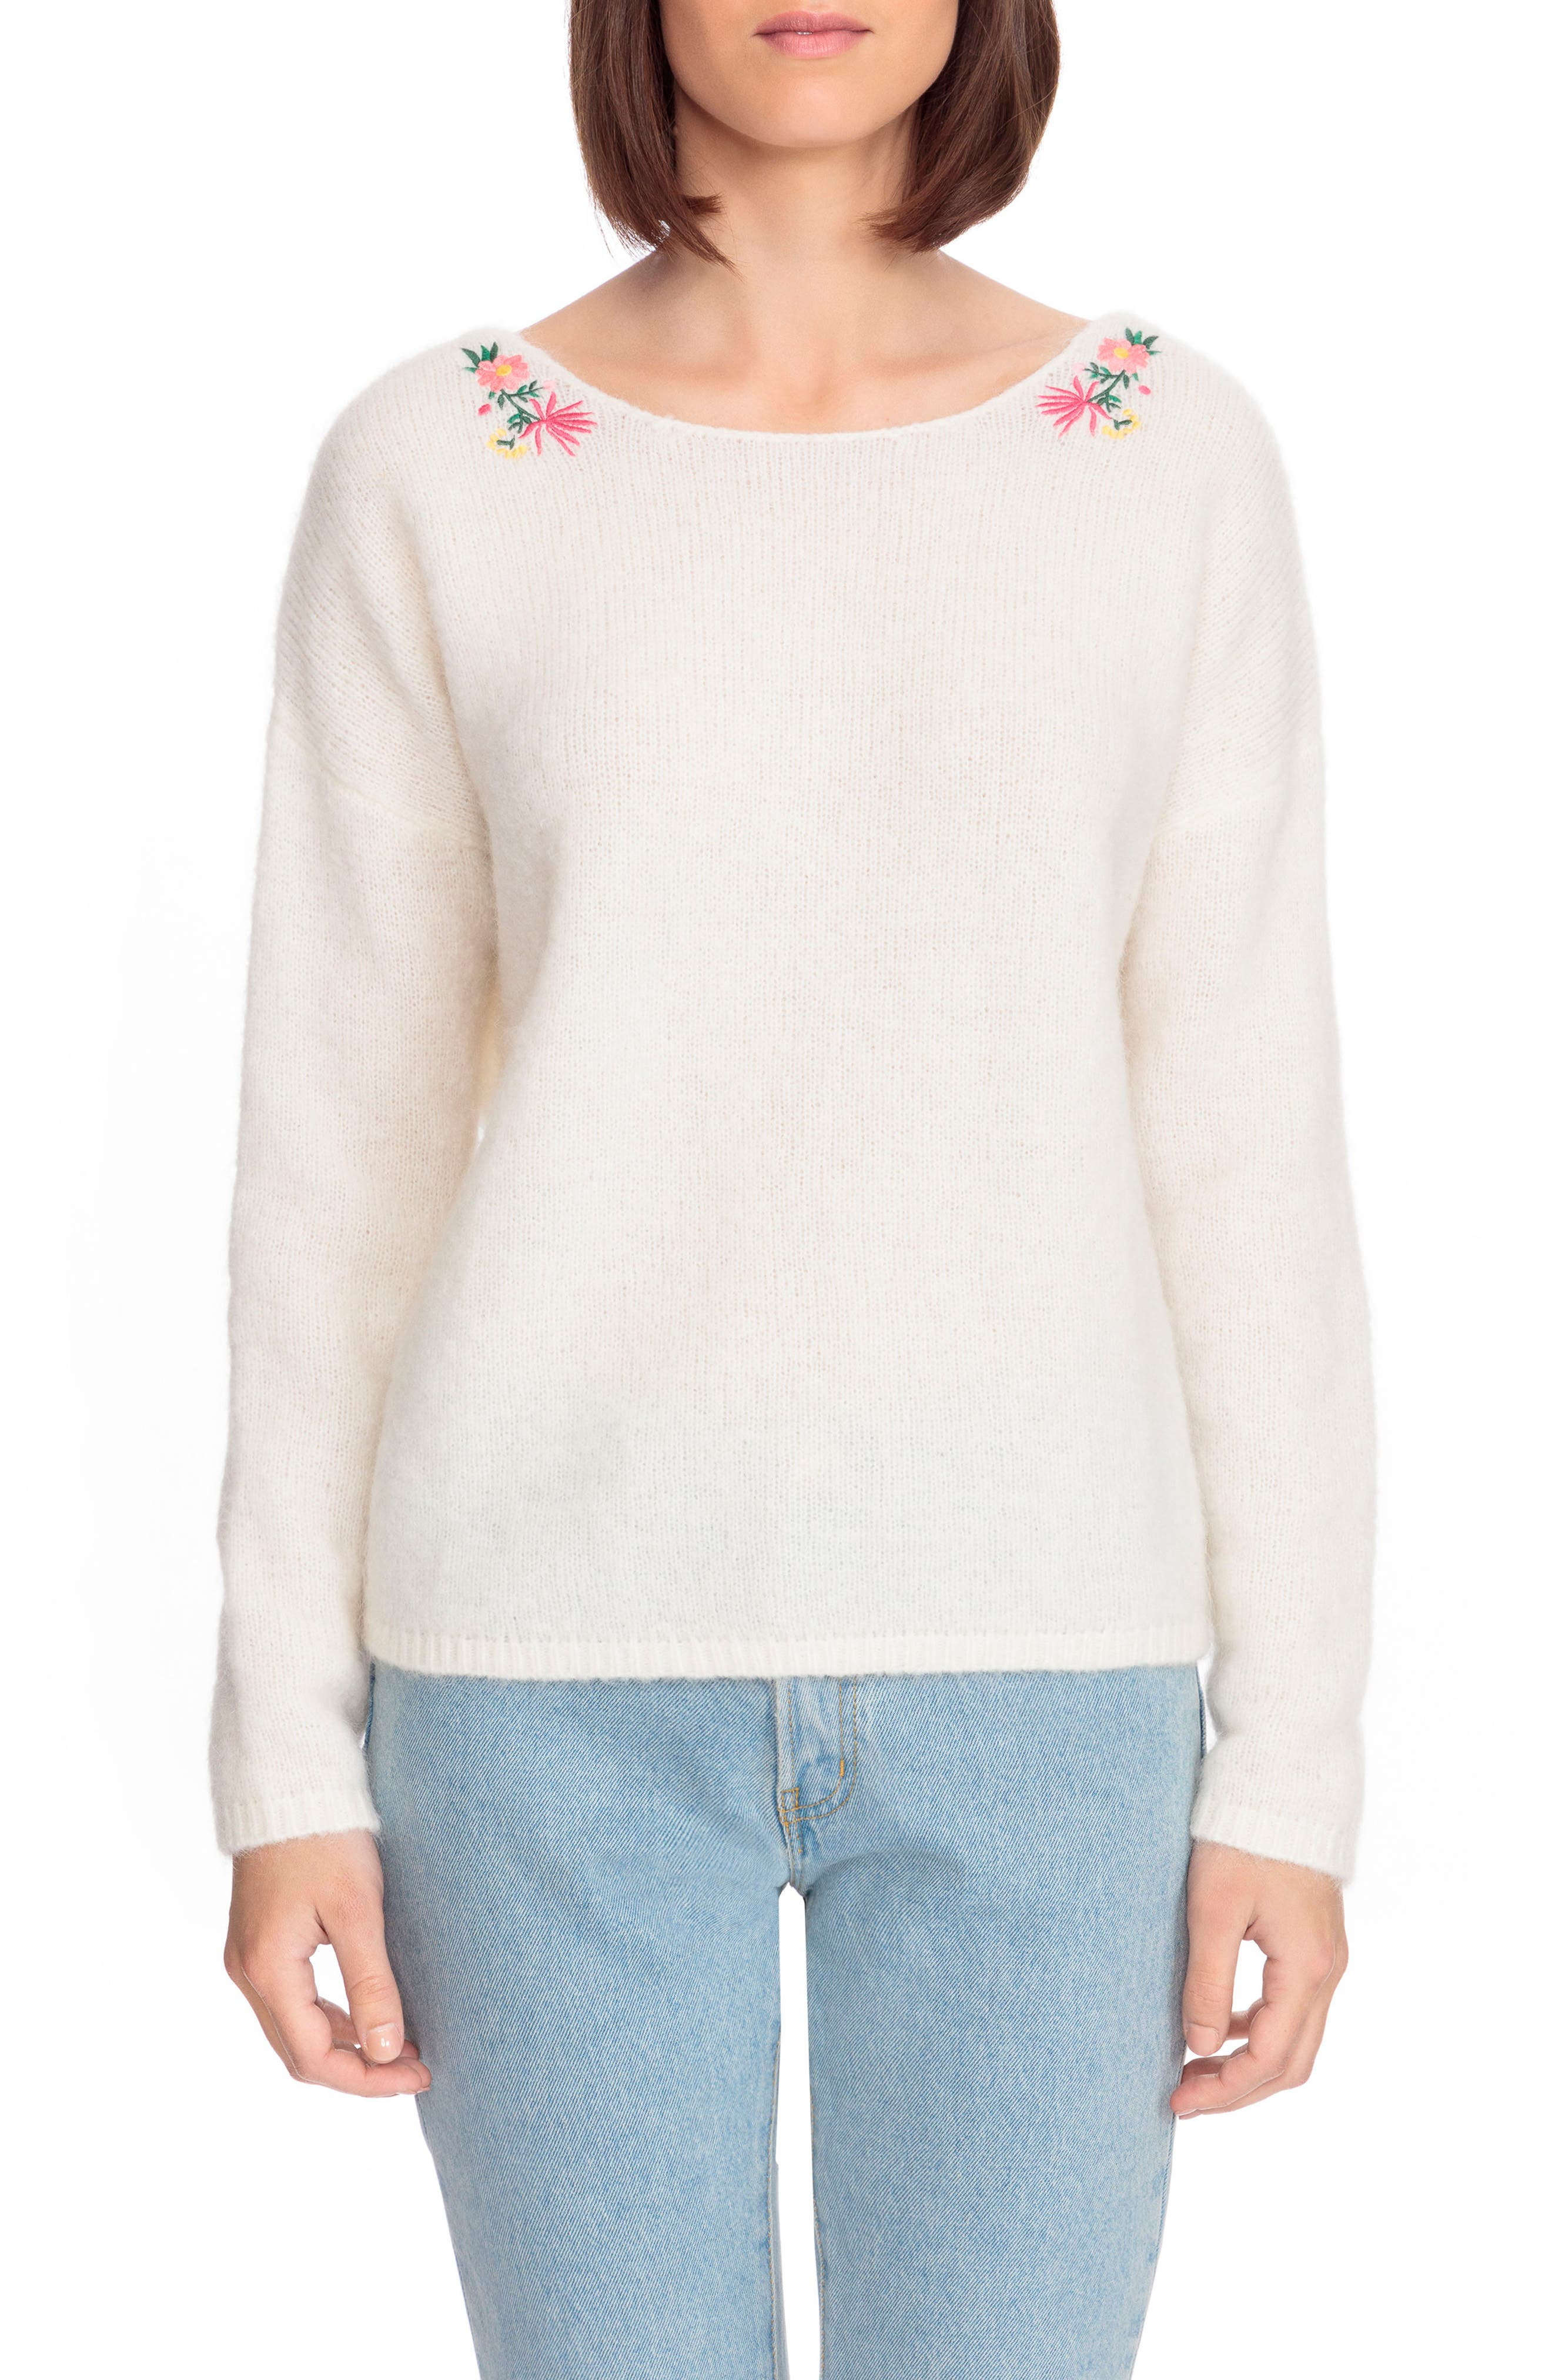 Cassiopee Embroidered Sweater,                             Main thumbnail 1, color,                             Off White